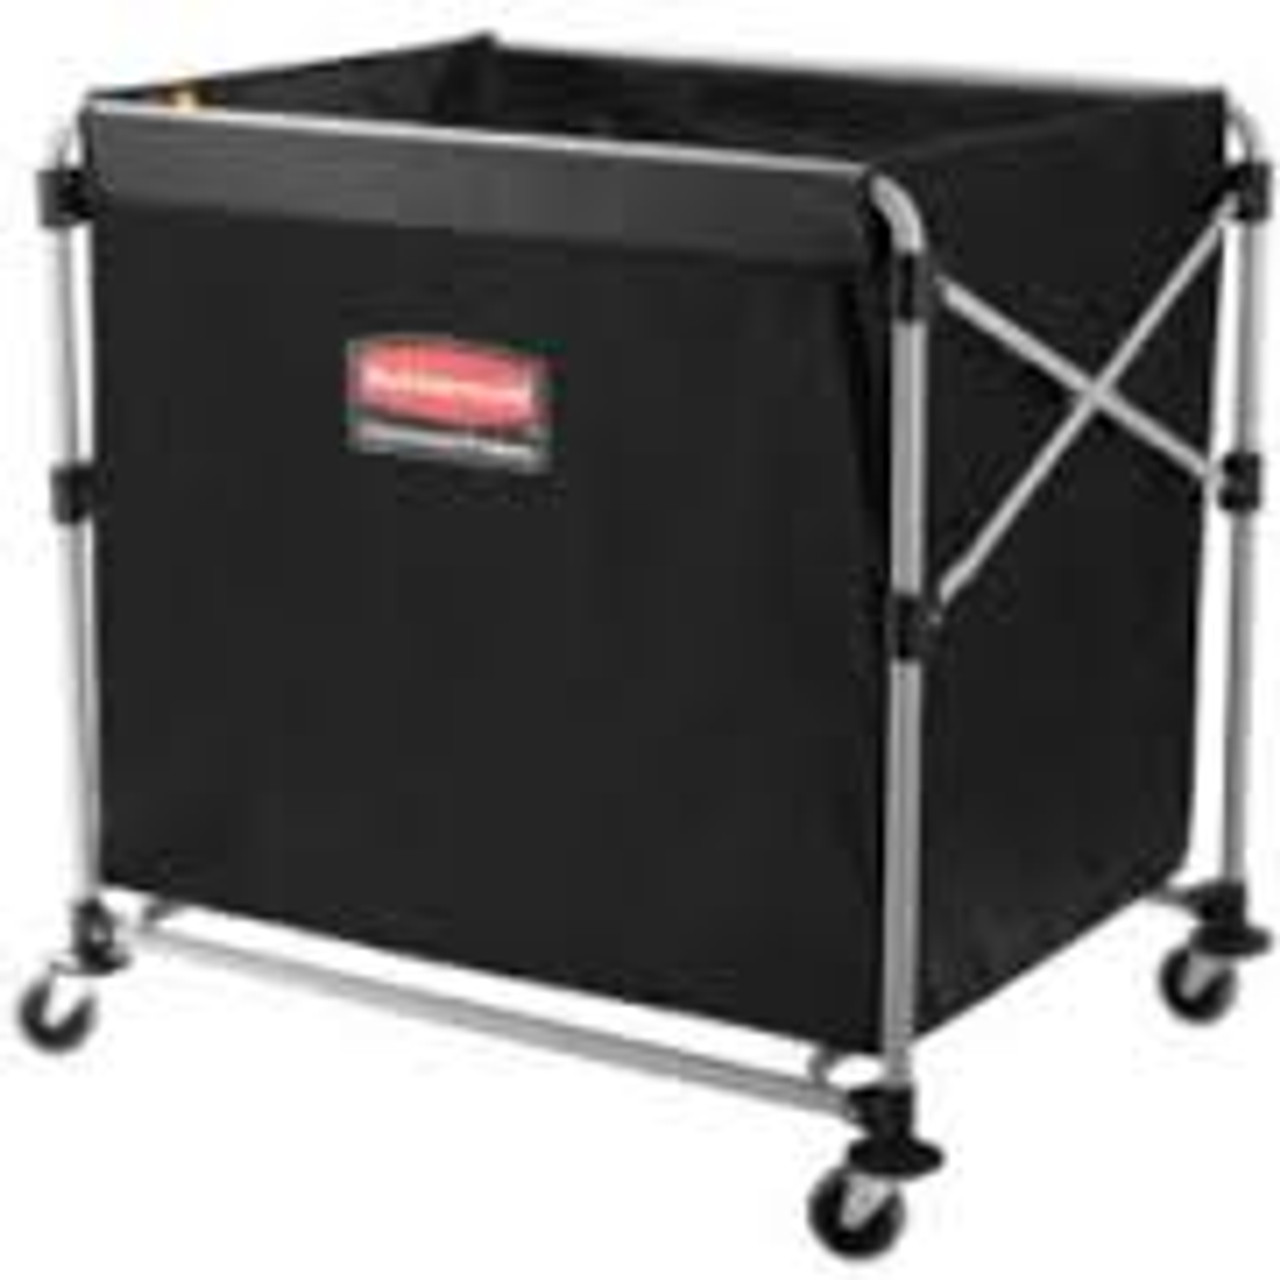 Rubbermaid 1881750 Commercial Collapsible X-Cart, Black/Silver, Steel, 8 Bushel Cart